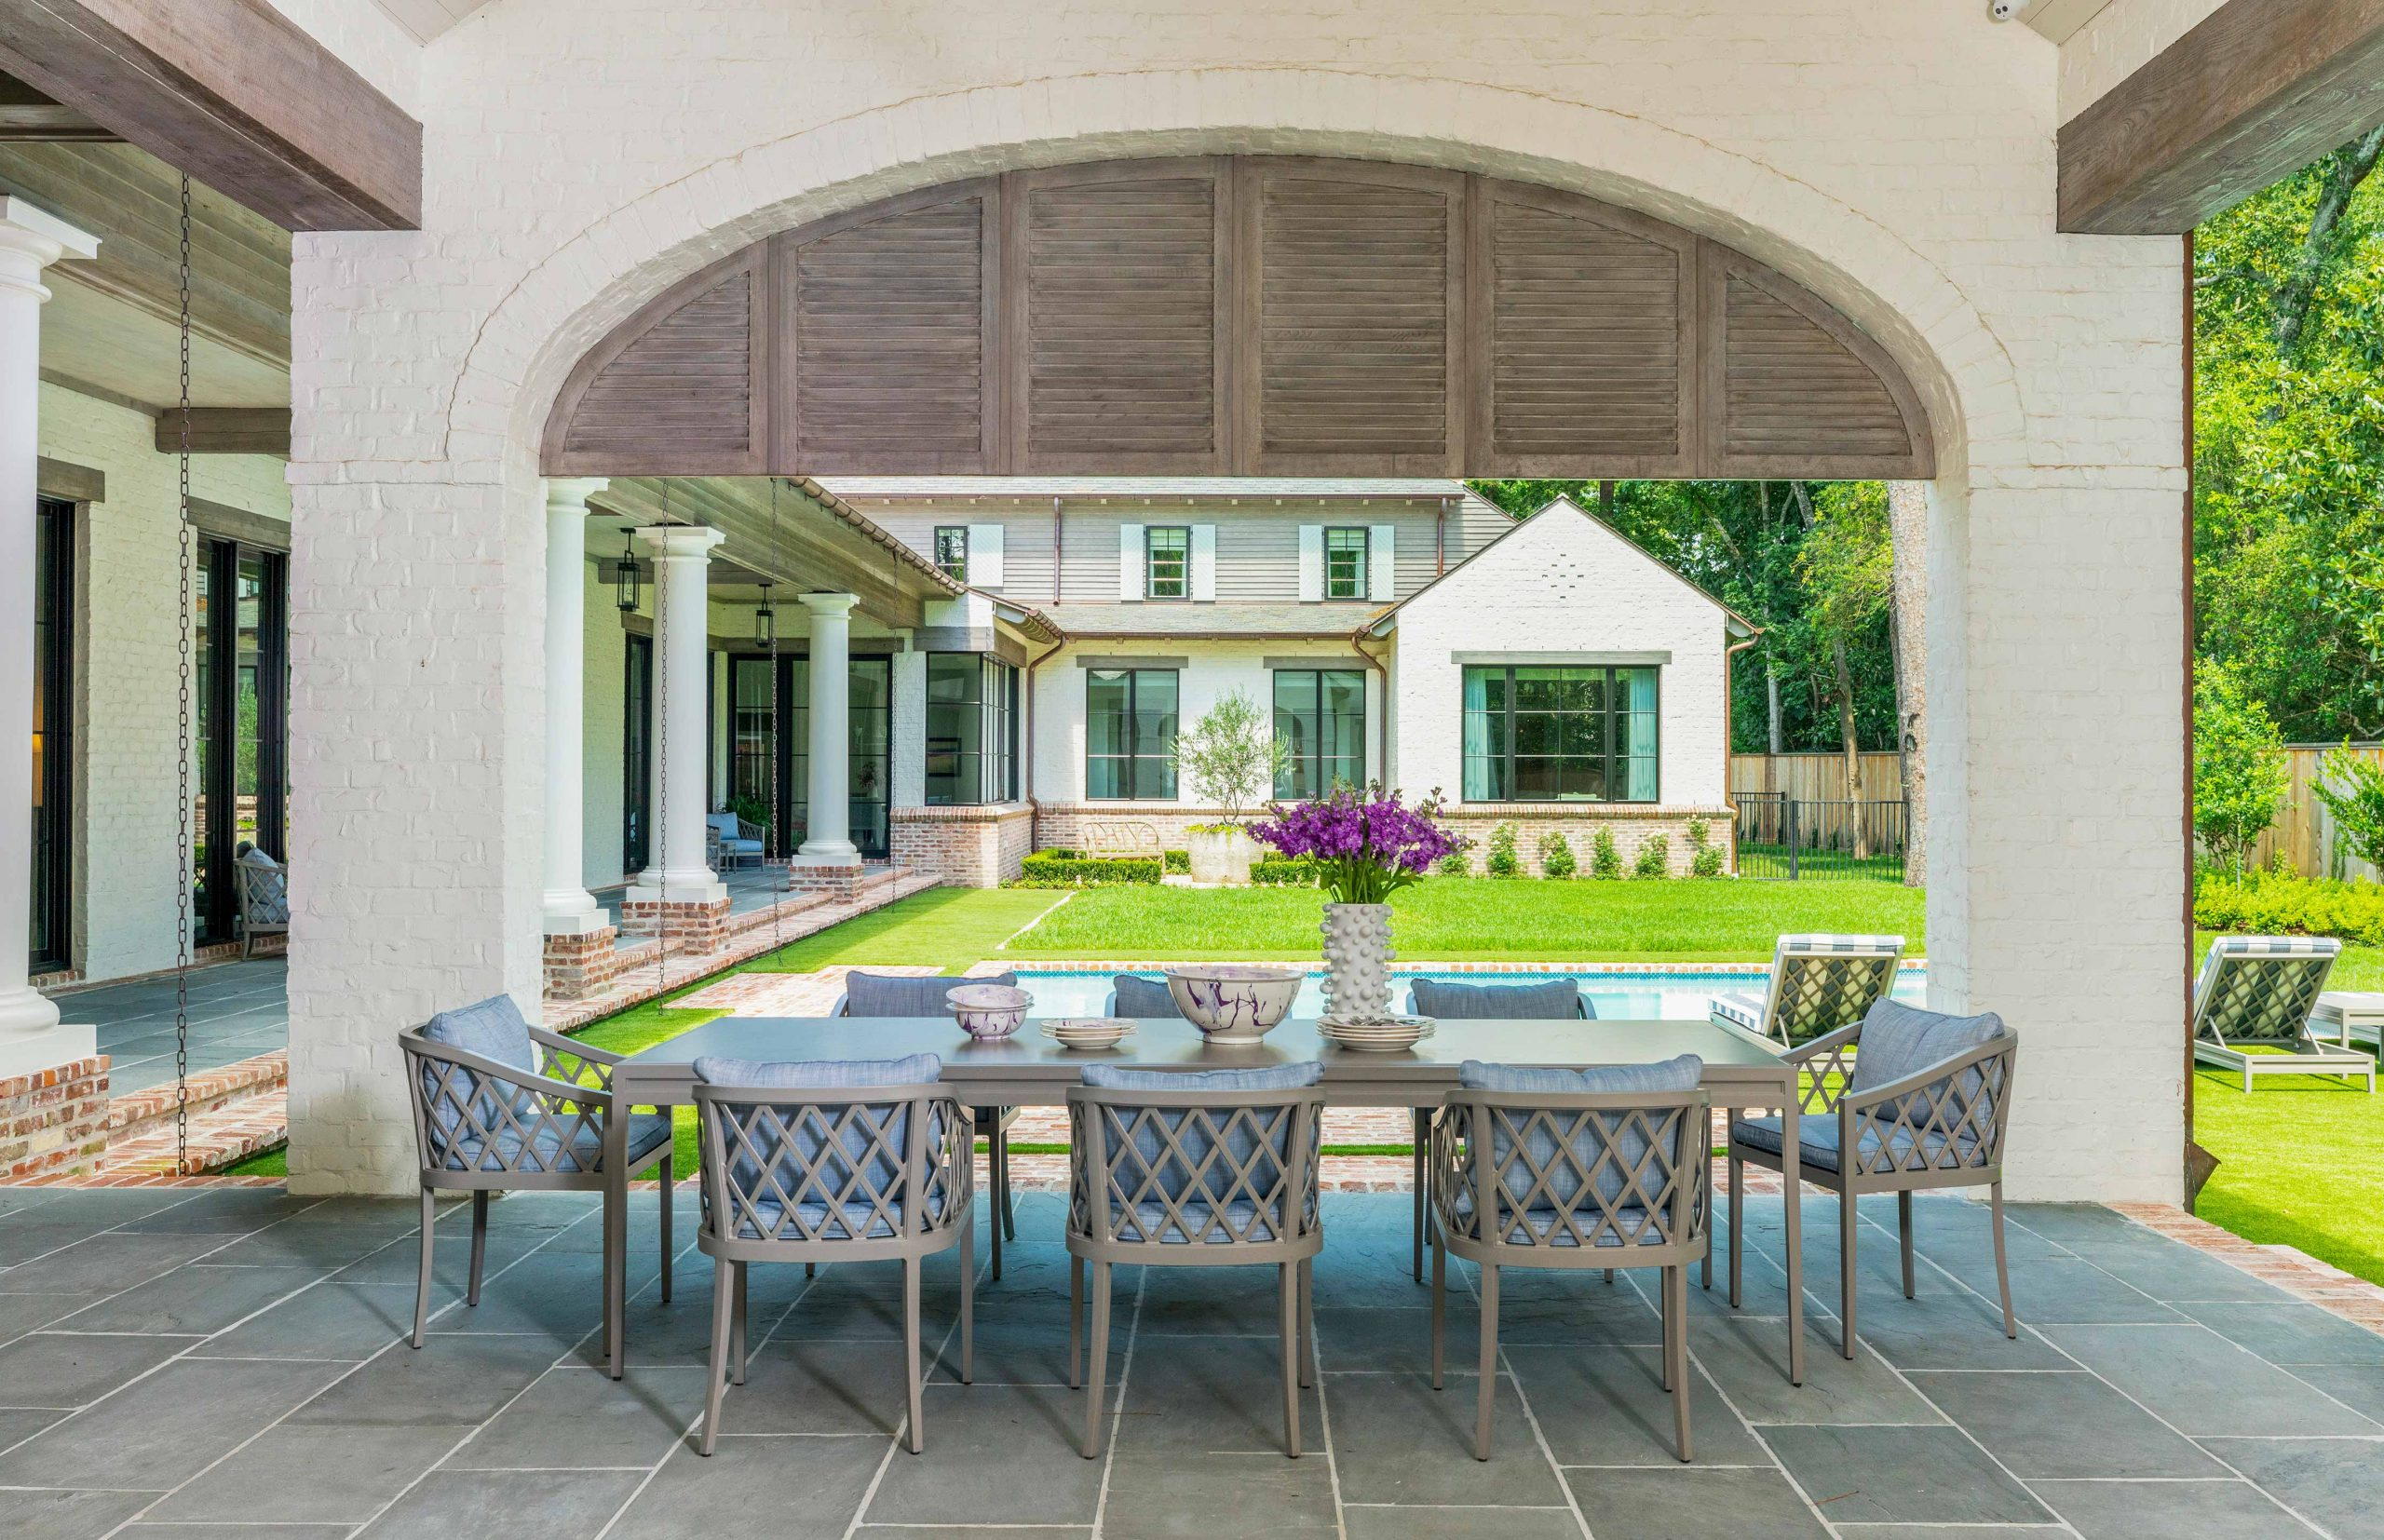 outdoor dining set with pool and yard - Creative Tonic